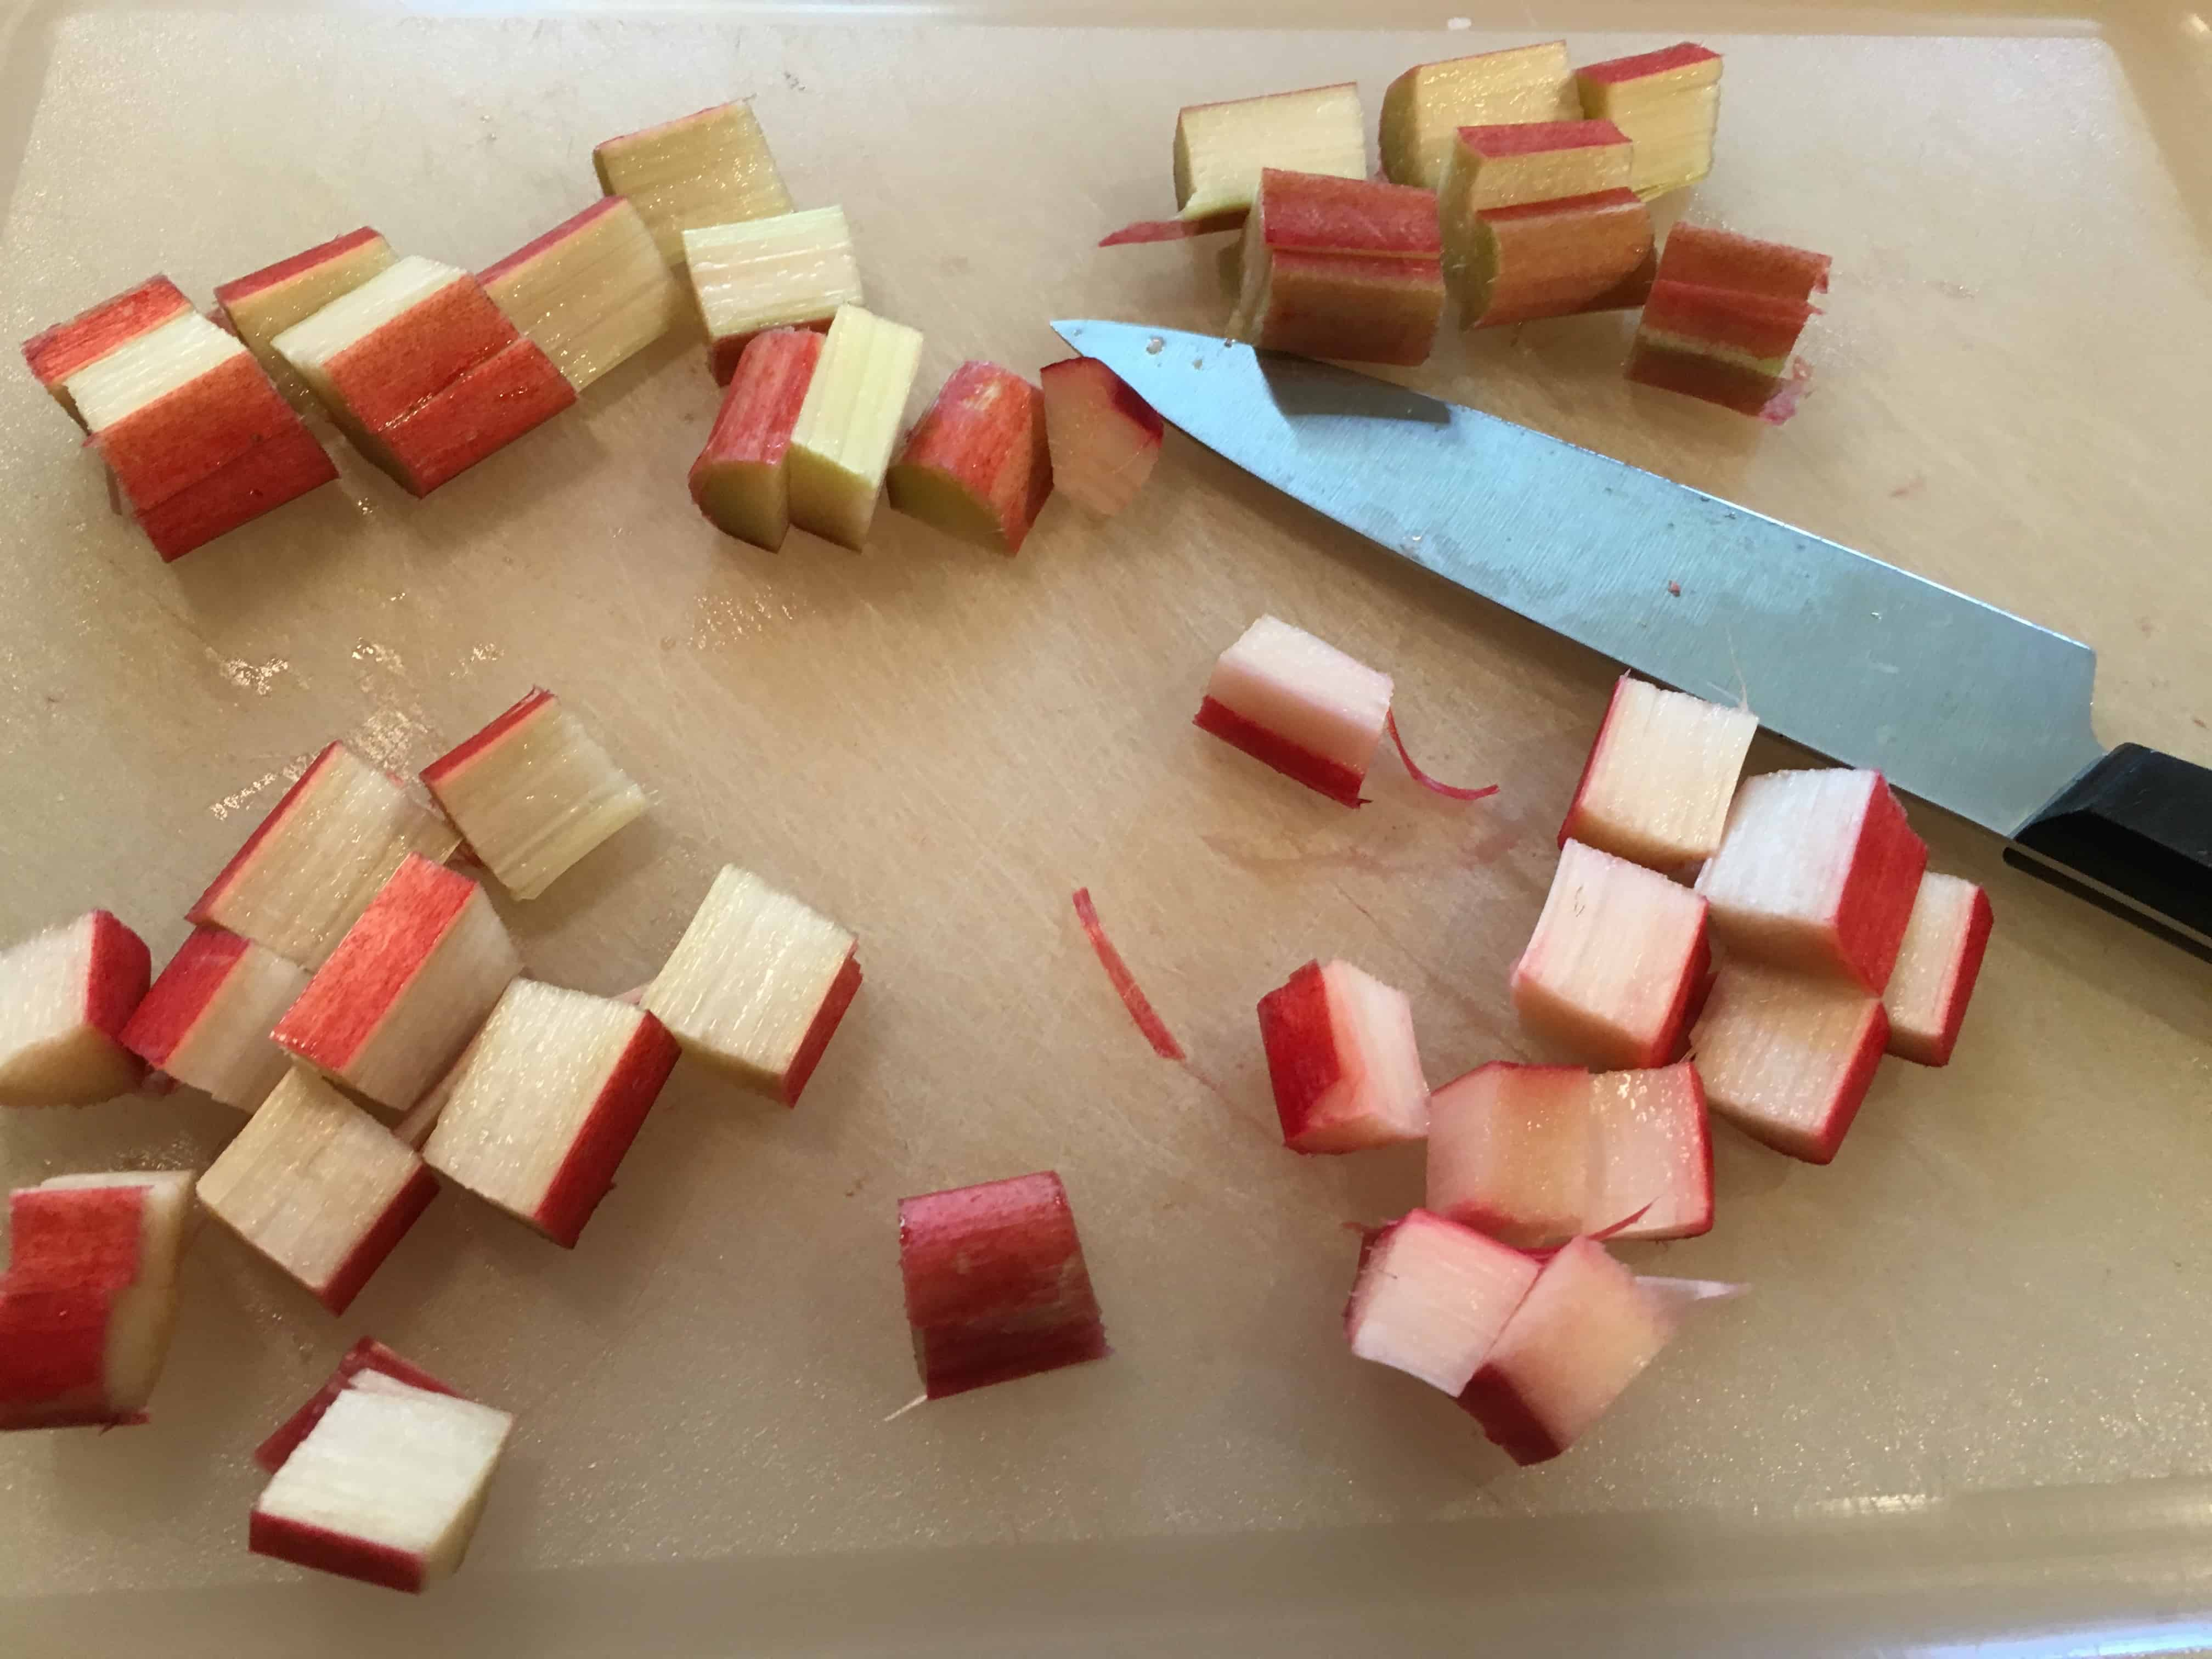 Rhubarb may also be used in tarts, crisps, and jams.